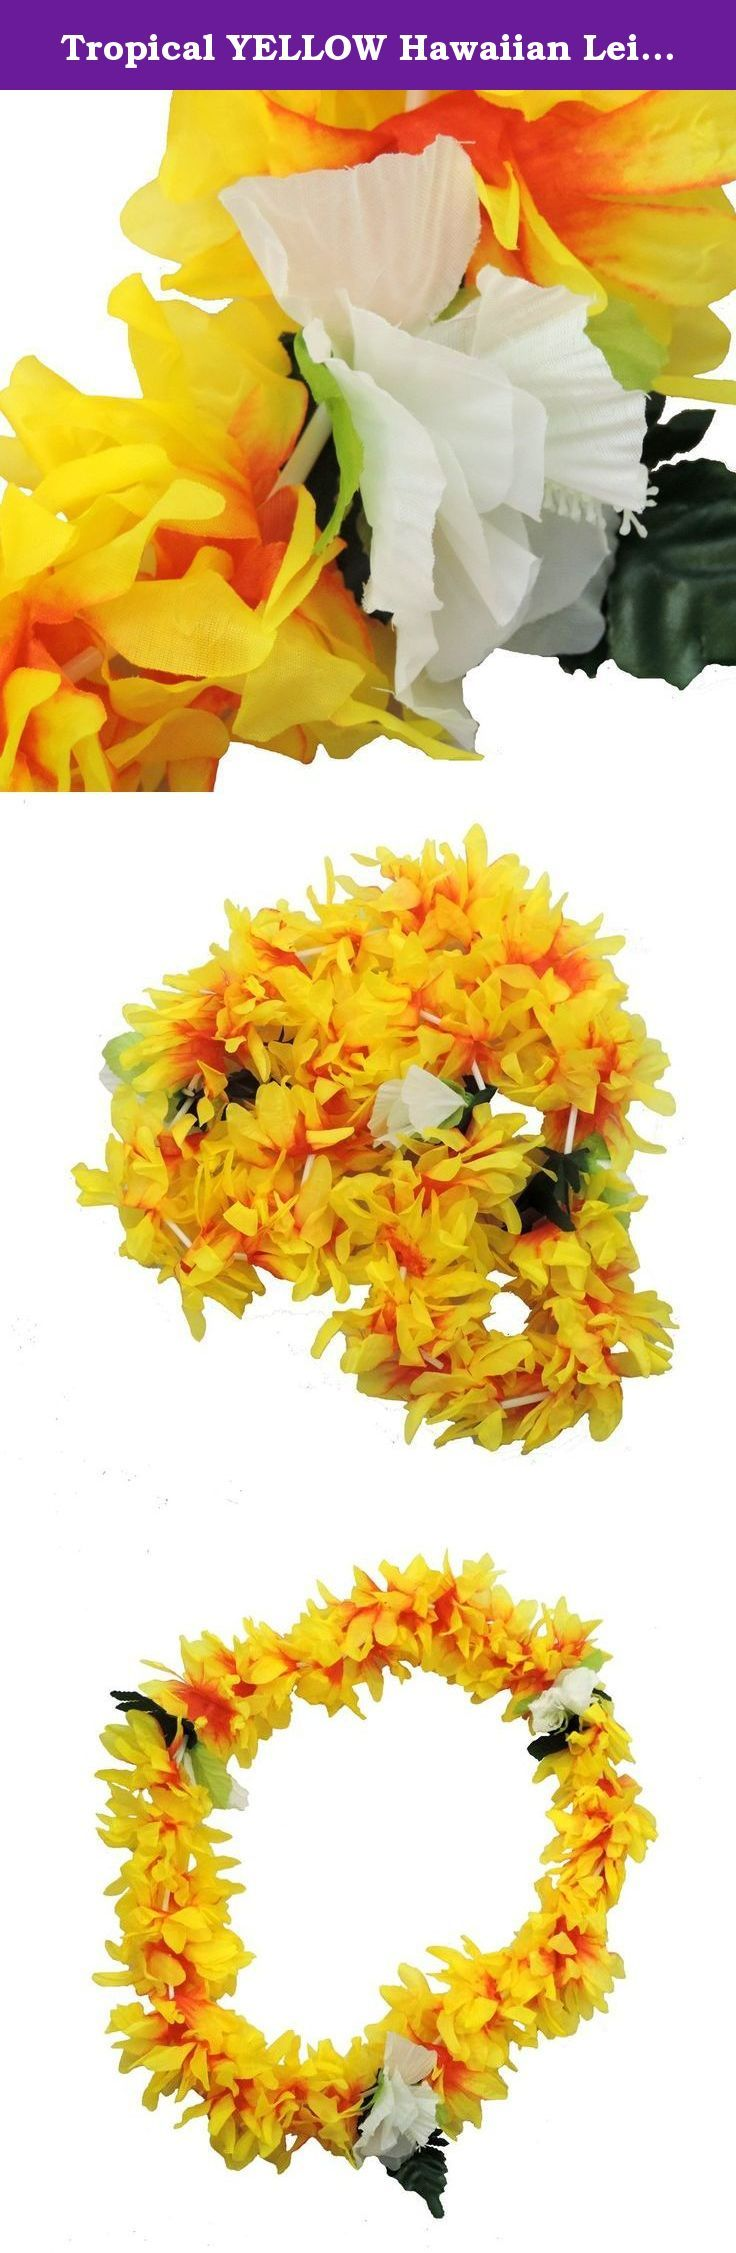 Tropical YELLOW Hawaiian Lei Polynesian Faux Hybiscus Flower Necklace. Hit the beach with this fun and festive flower lei. Great for vacations, weddings, parties or just playing dress up. Stunning Yellow color with white/green flower accents.